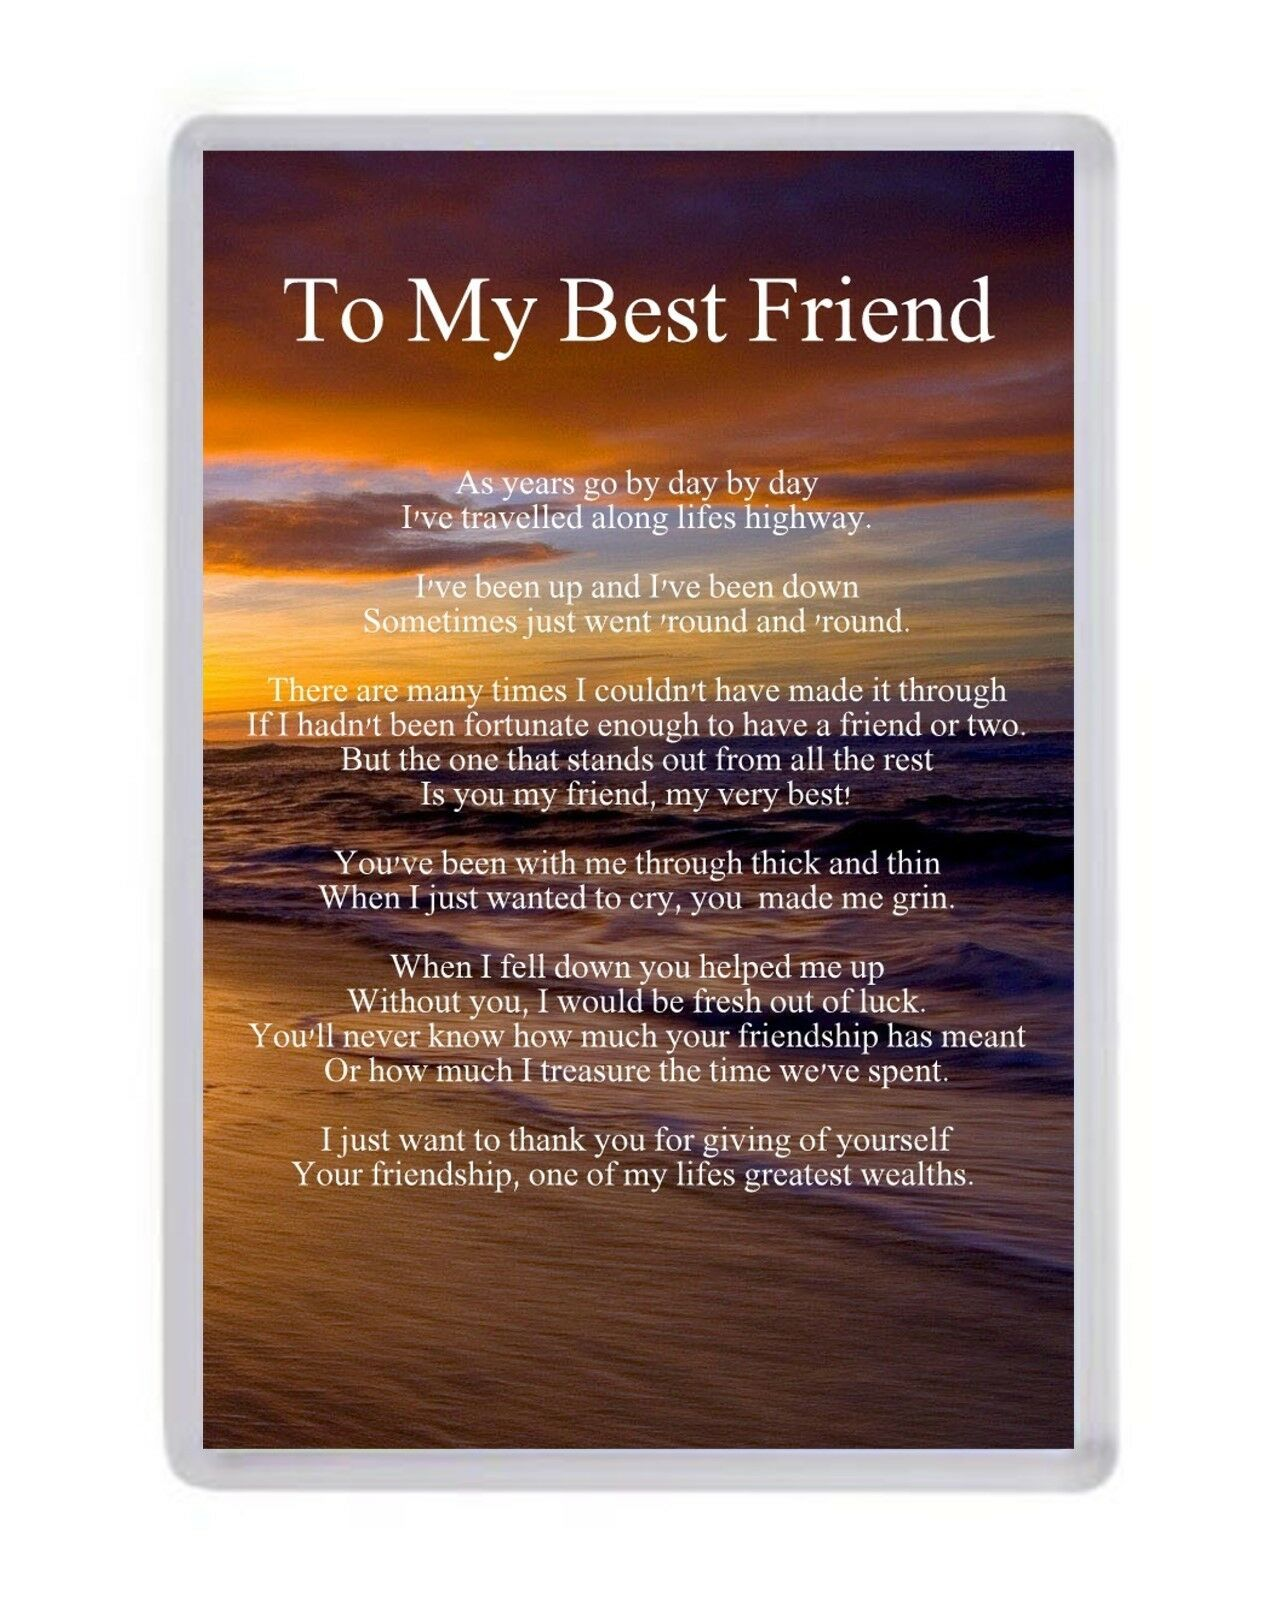 Personalised To My Best Friend Fridge Magnet Birthday Present Christmas Gift 1 Of 1FREE Shipping